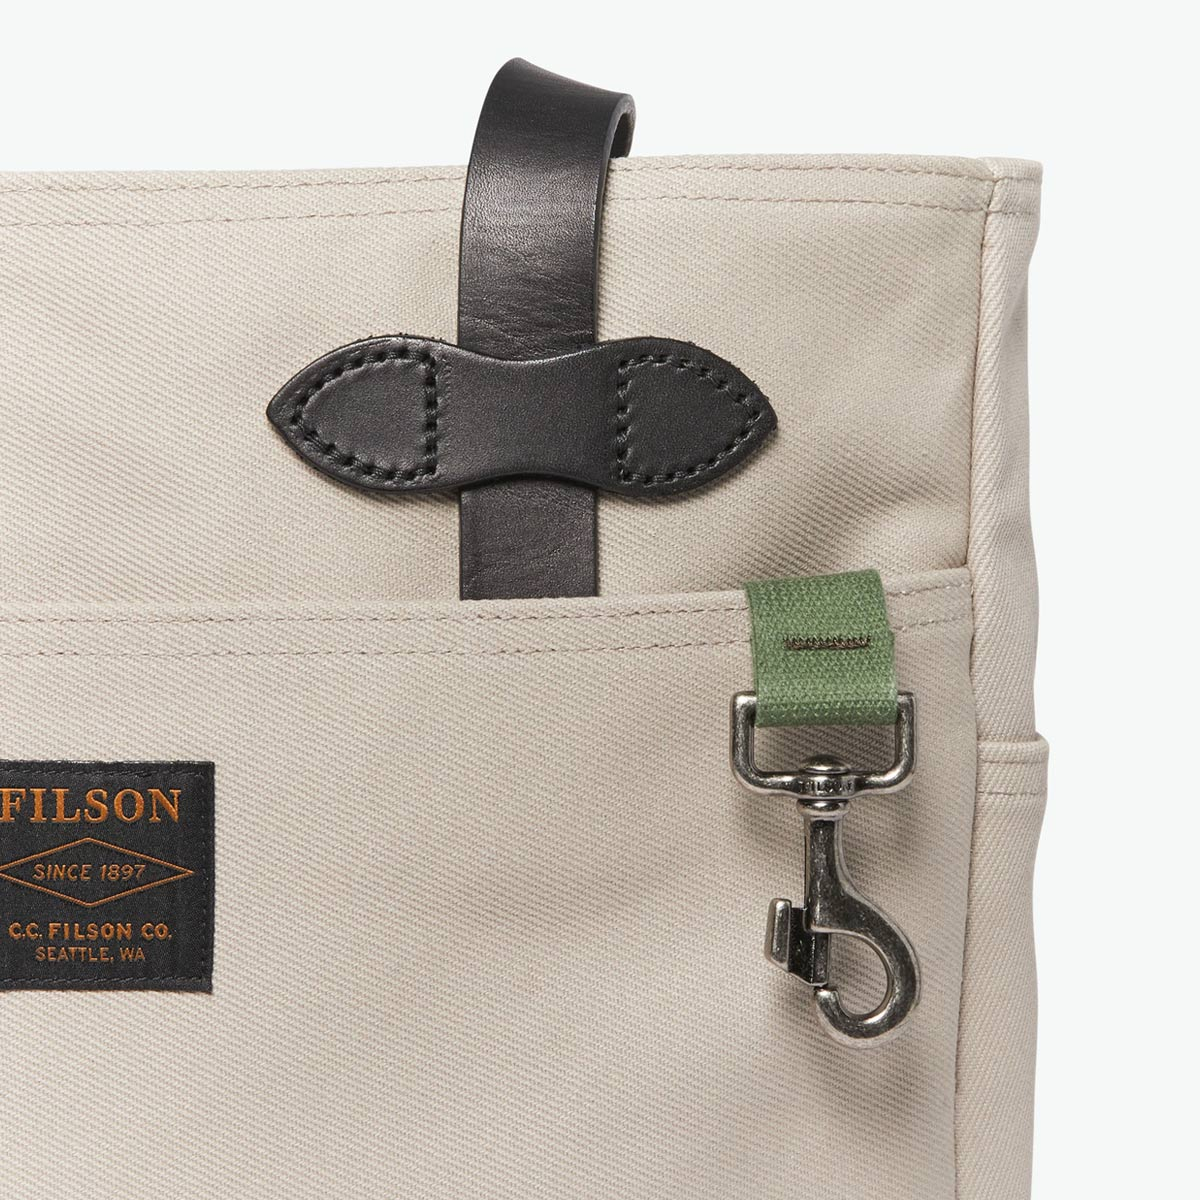 Filson Rugged Twill Tote Bag Twine, Tote made for men and women who love quality and style